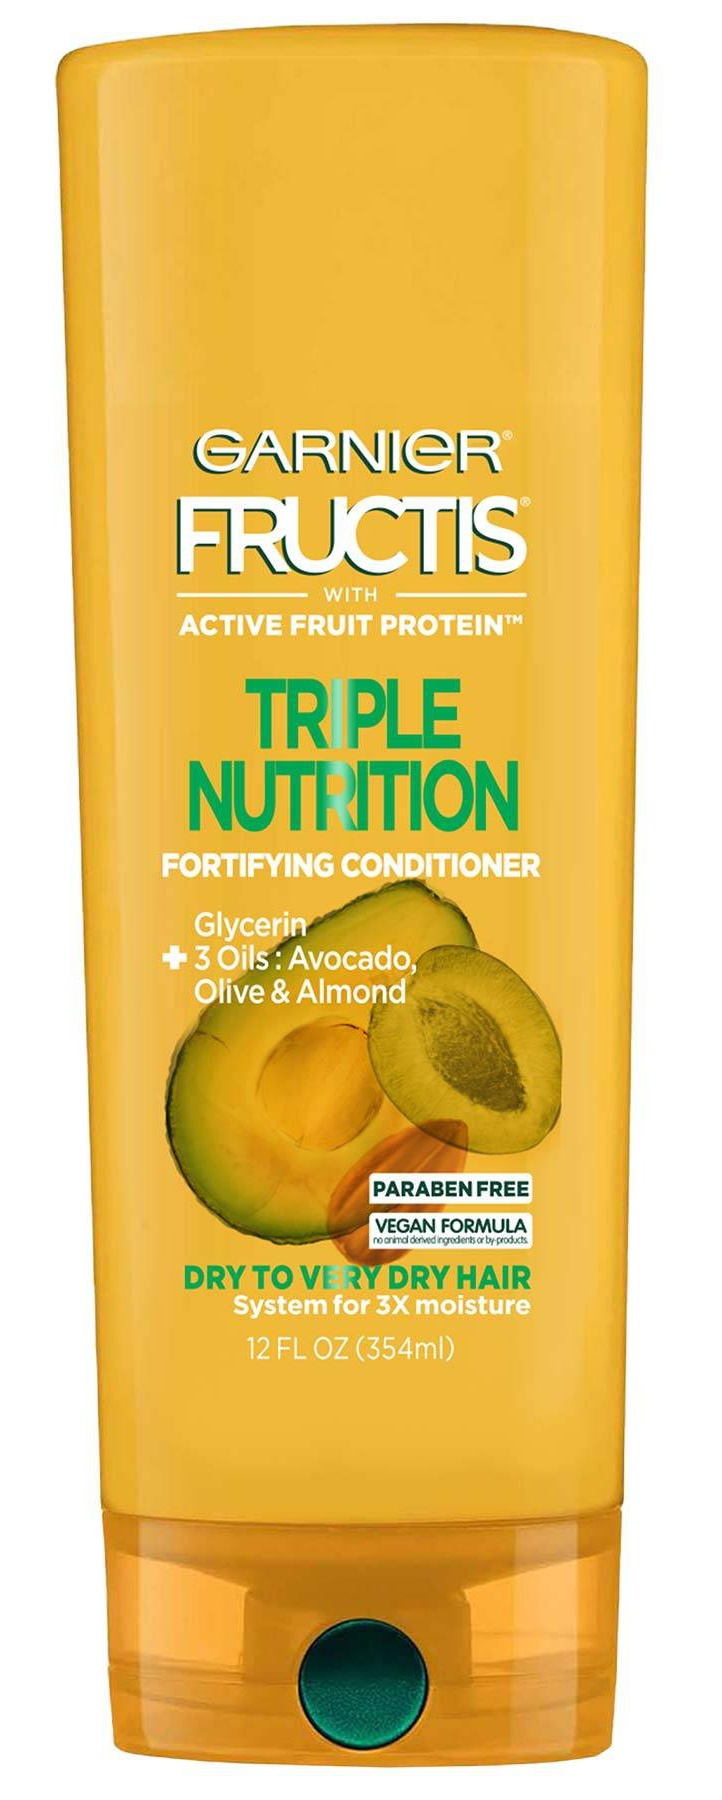 Garnier Fructis Active Fruit Protein Triple Nutrition Fortifying Conditioner